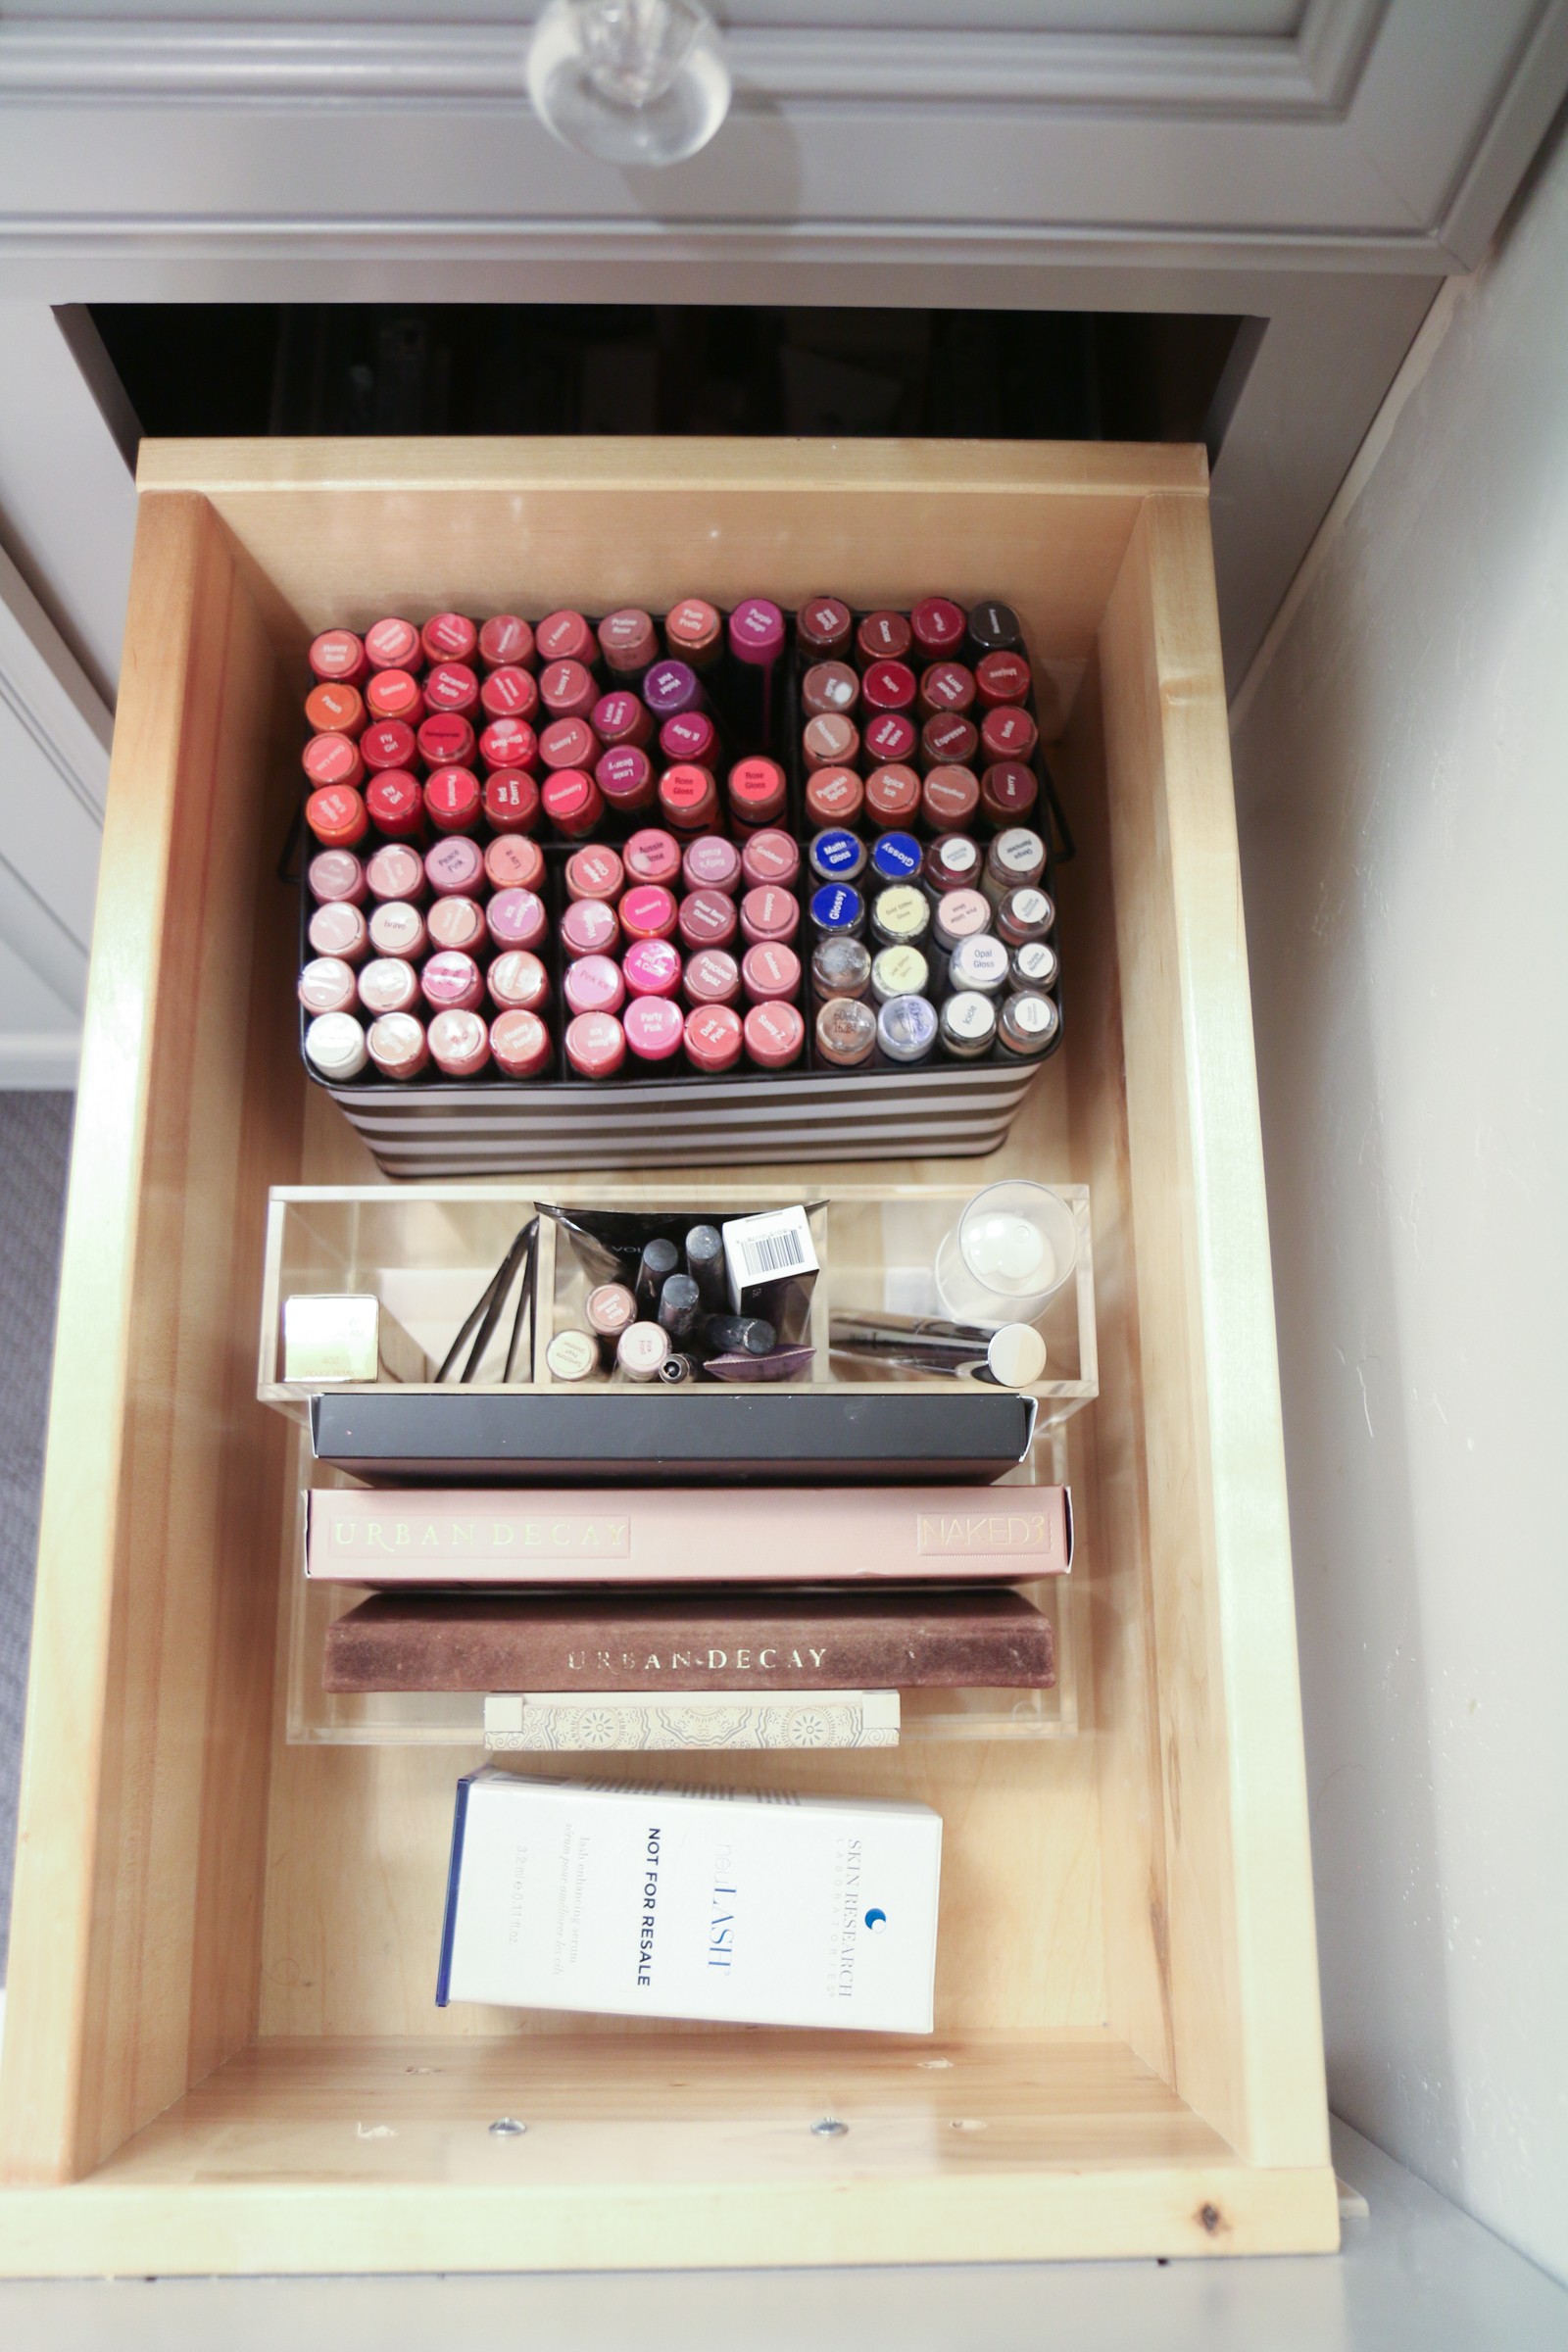 5 Tips From a Professional Organizer That Will Change Your Life by Utah lifestyle blogger Sandy A La Mode